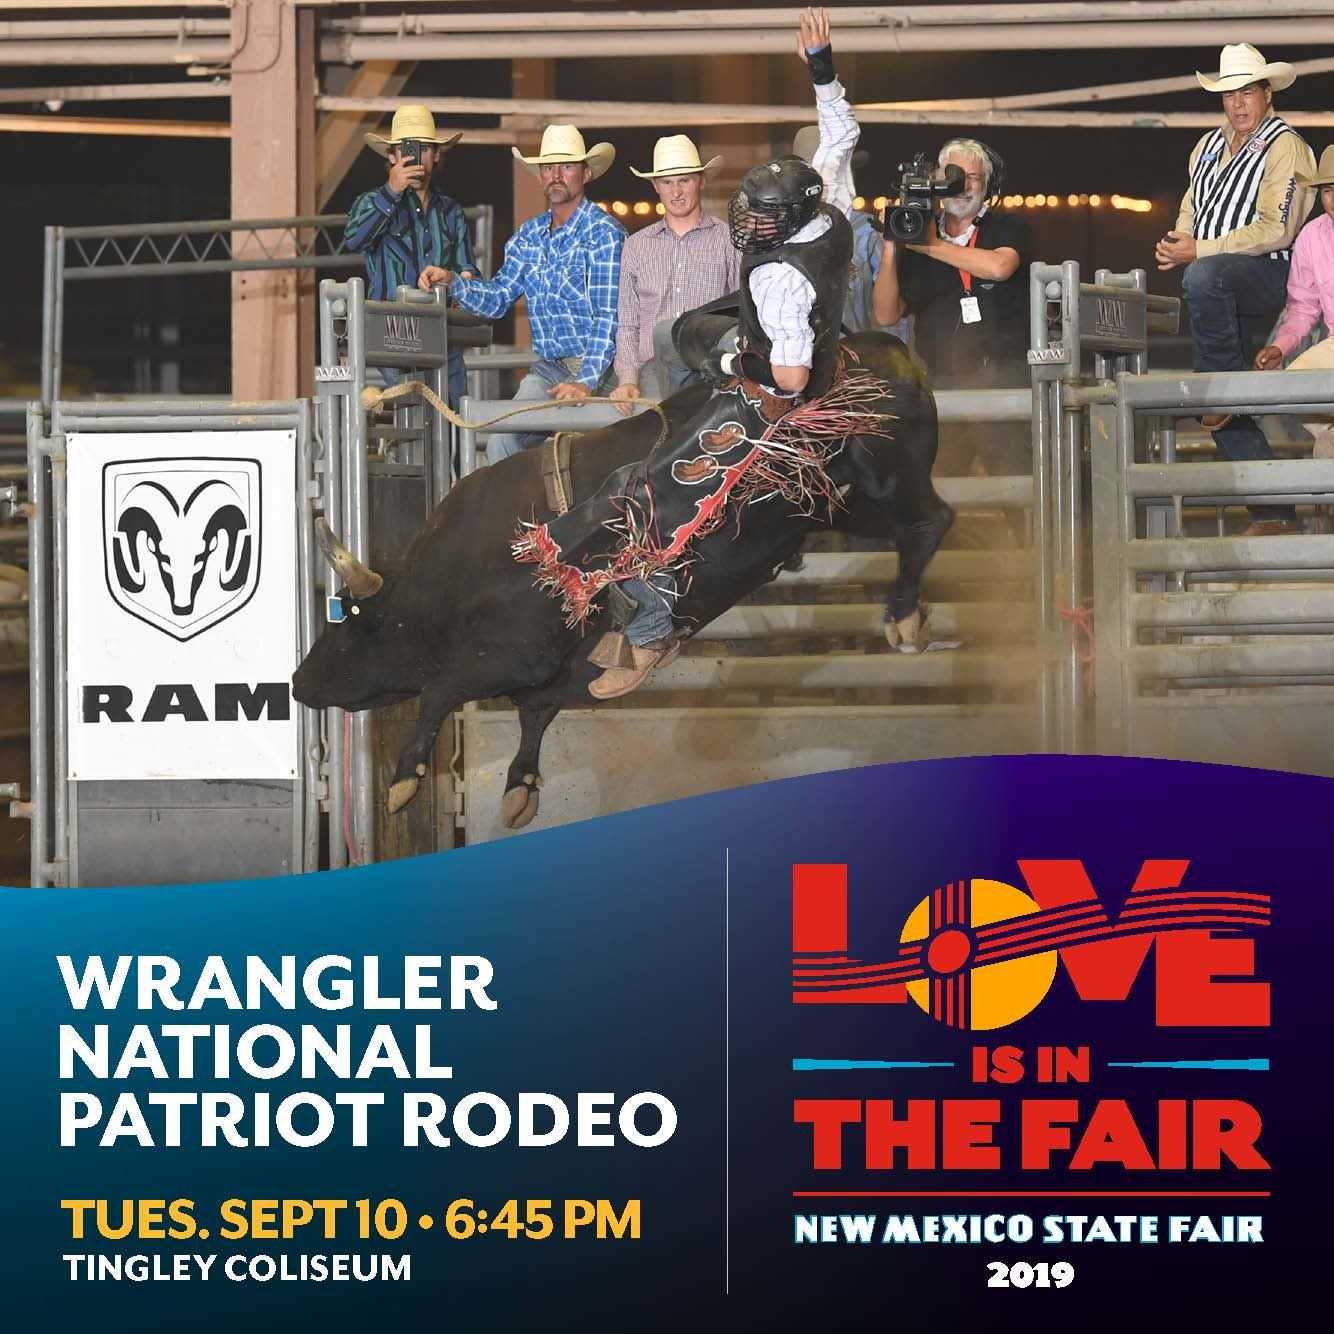 Wrangler National Patriot PRCA Rodeo